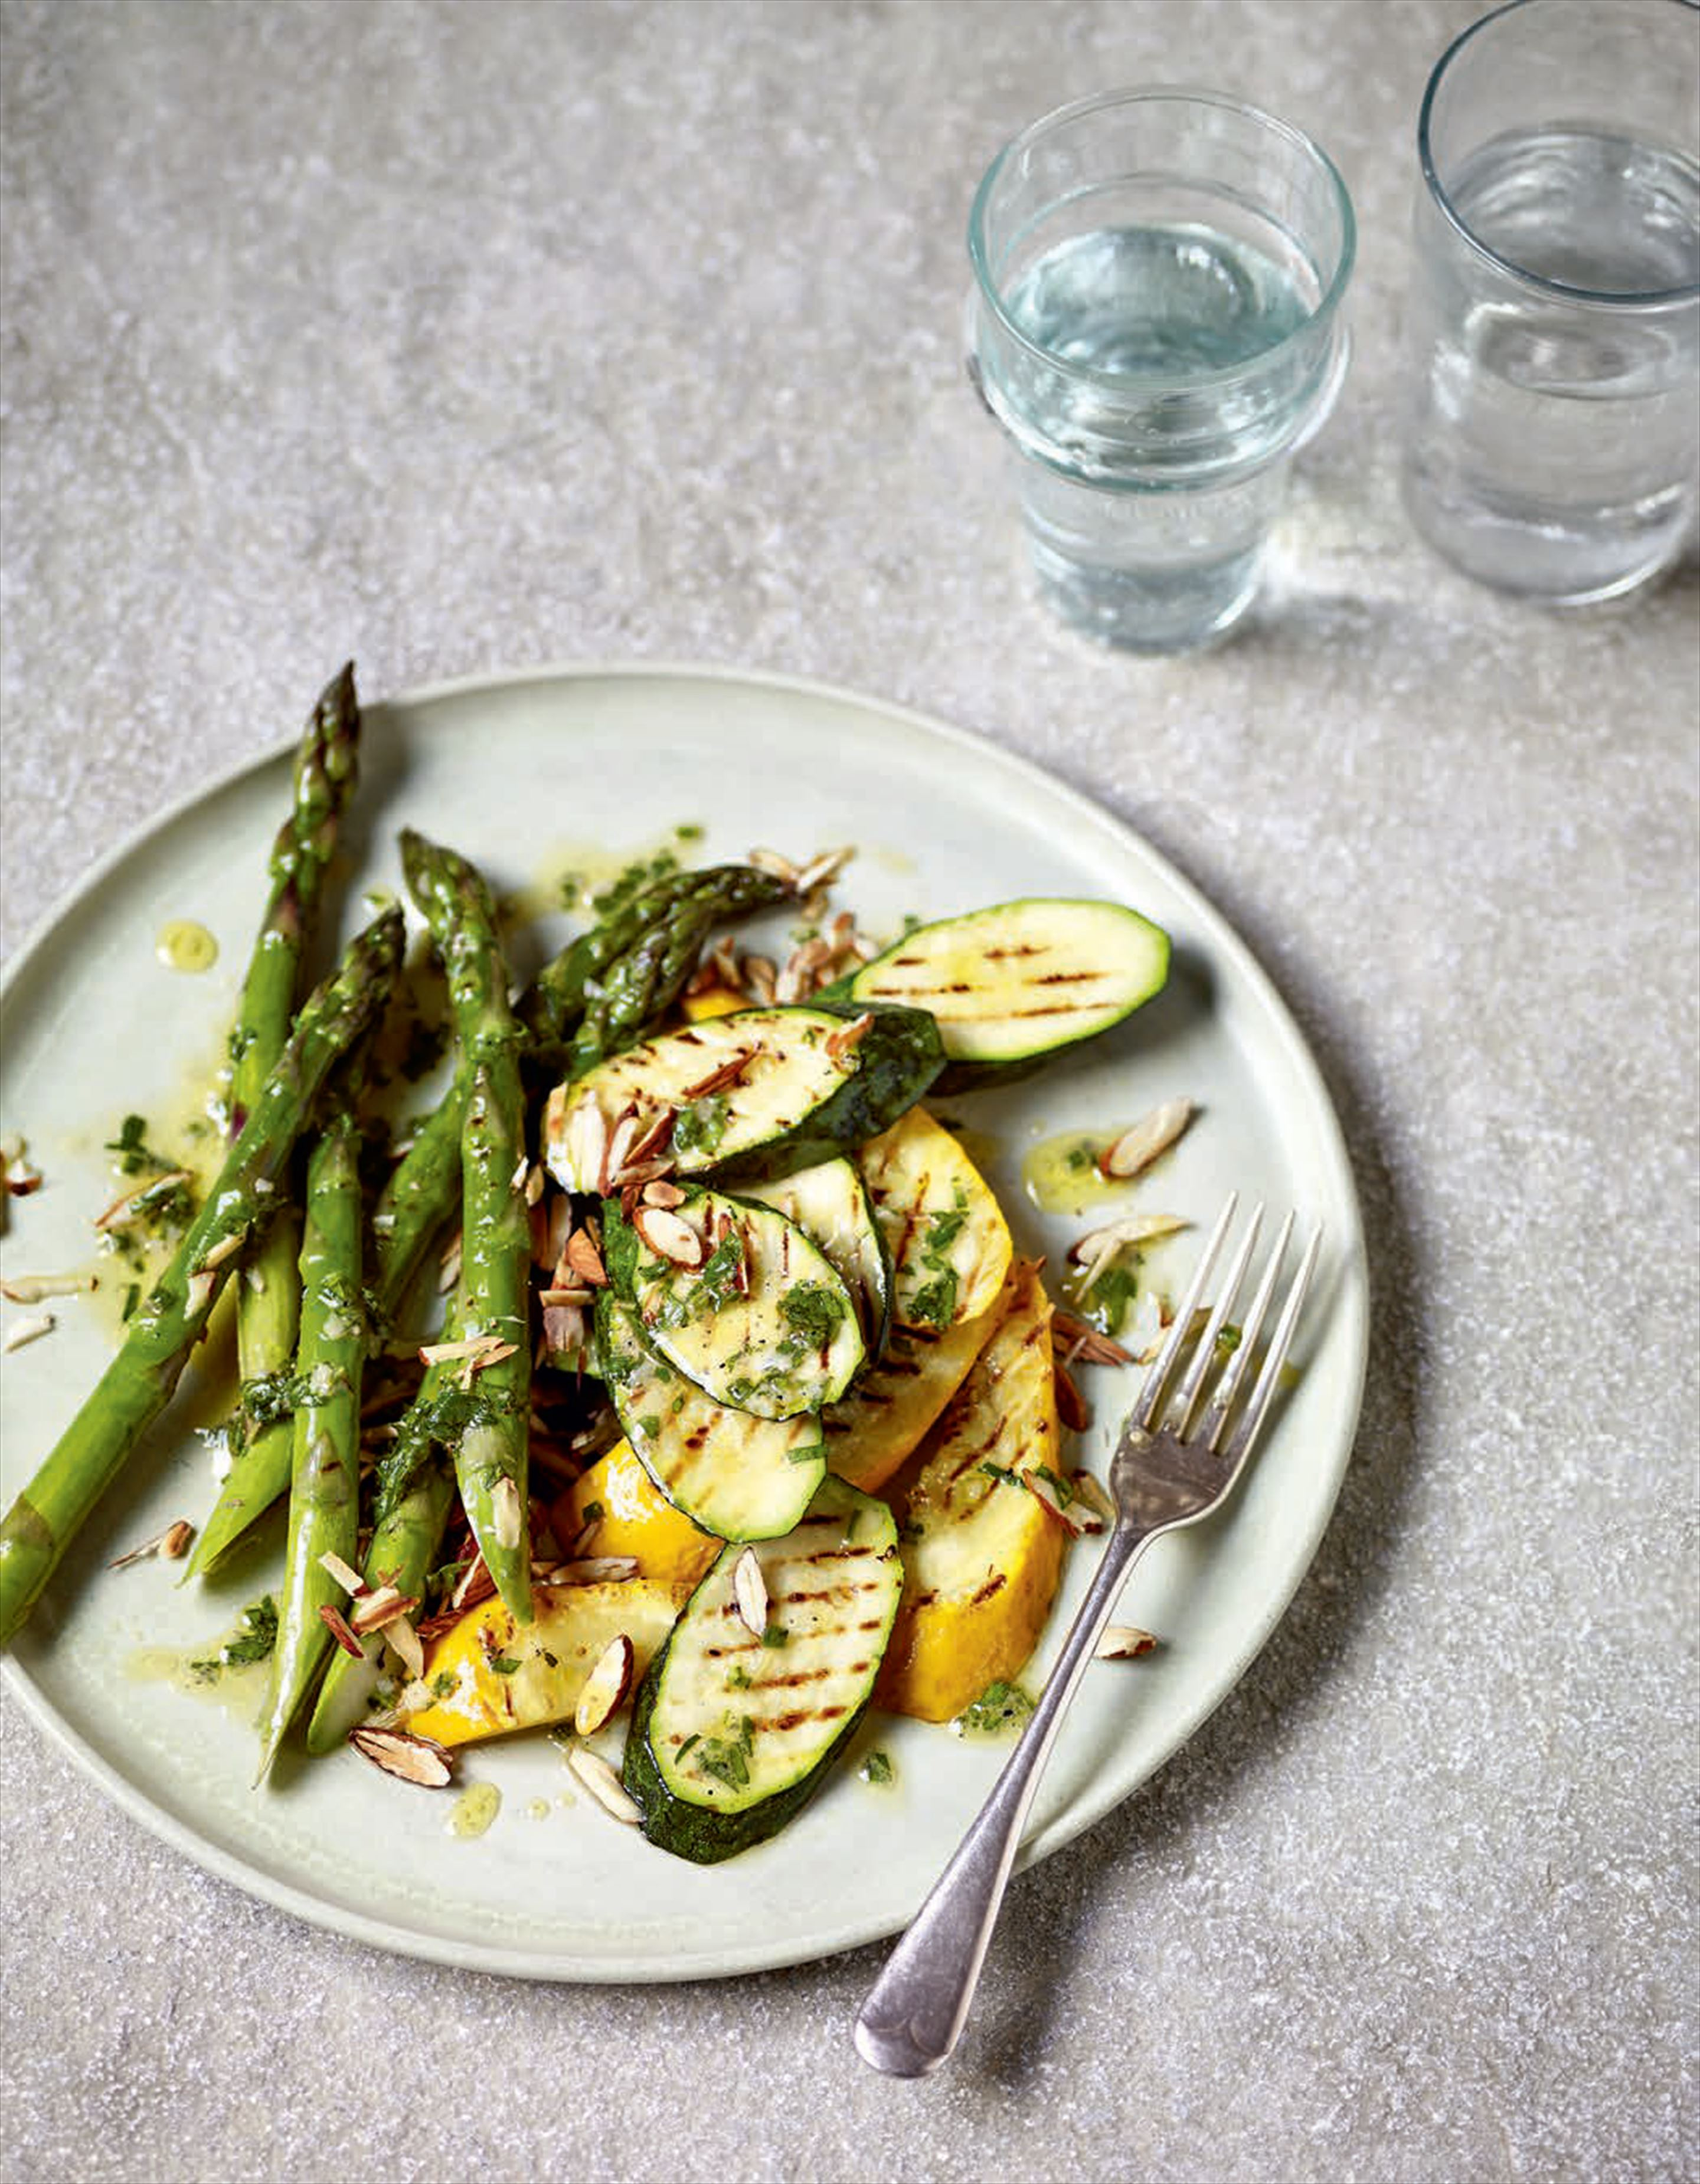 Chargrilled courgettes and asparagus with tarragon dressing